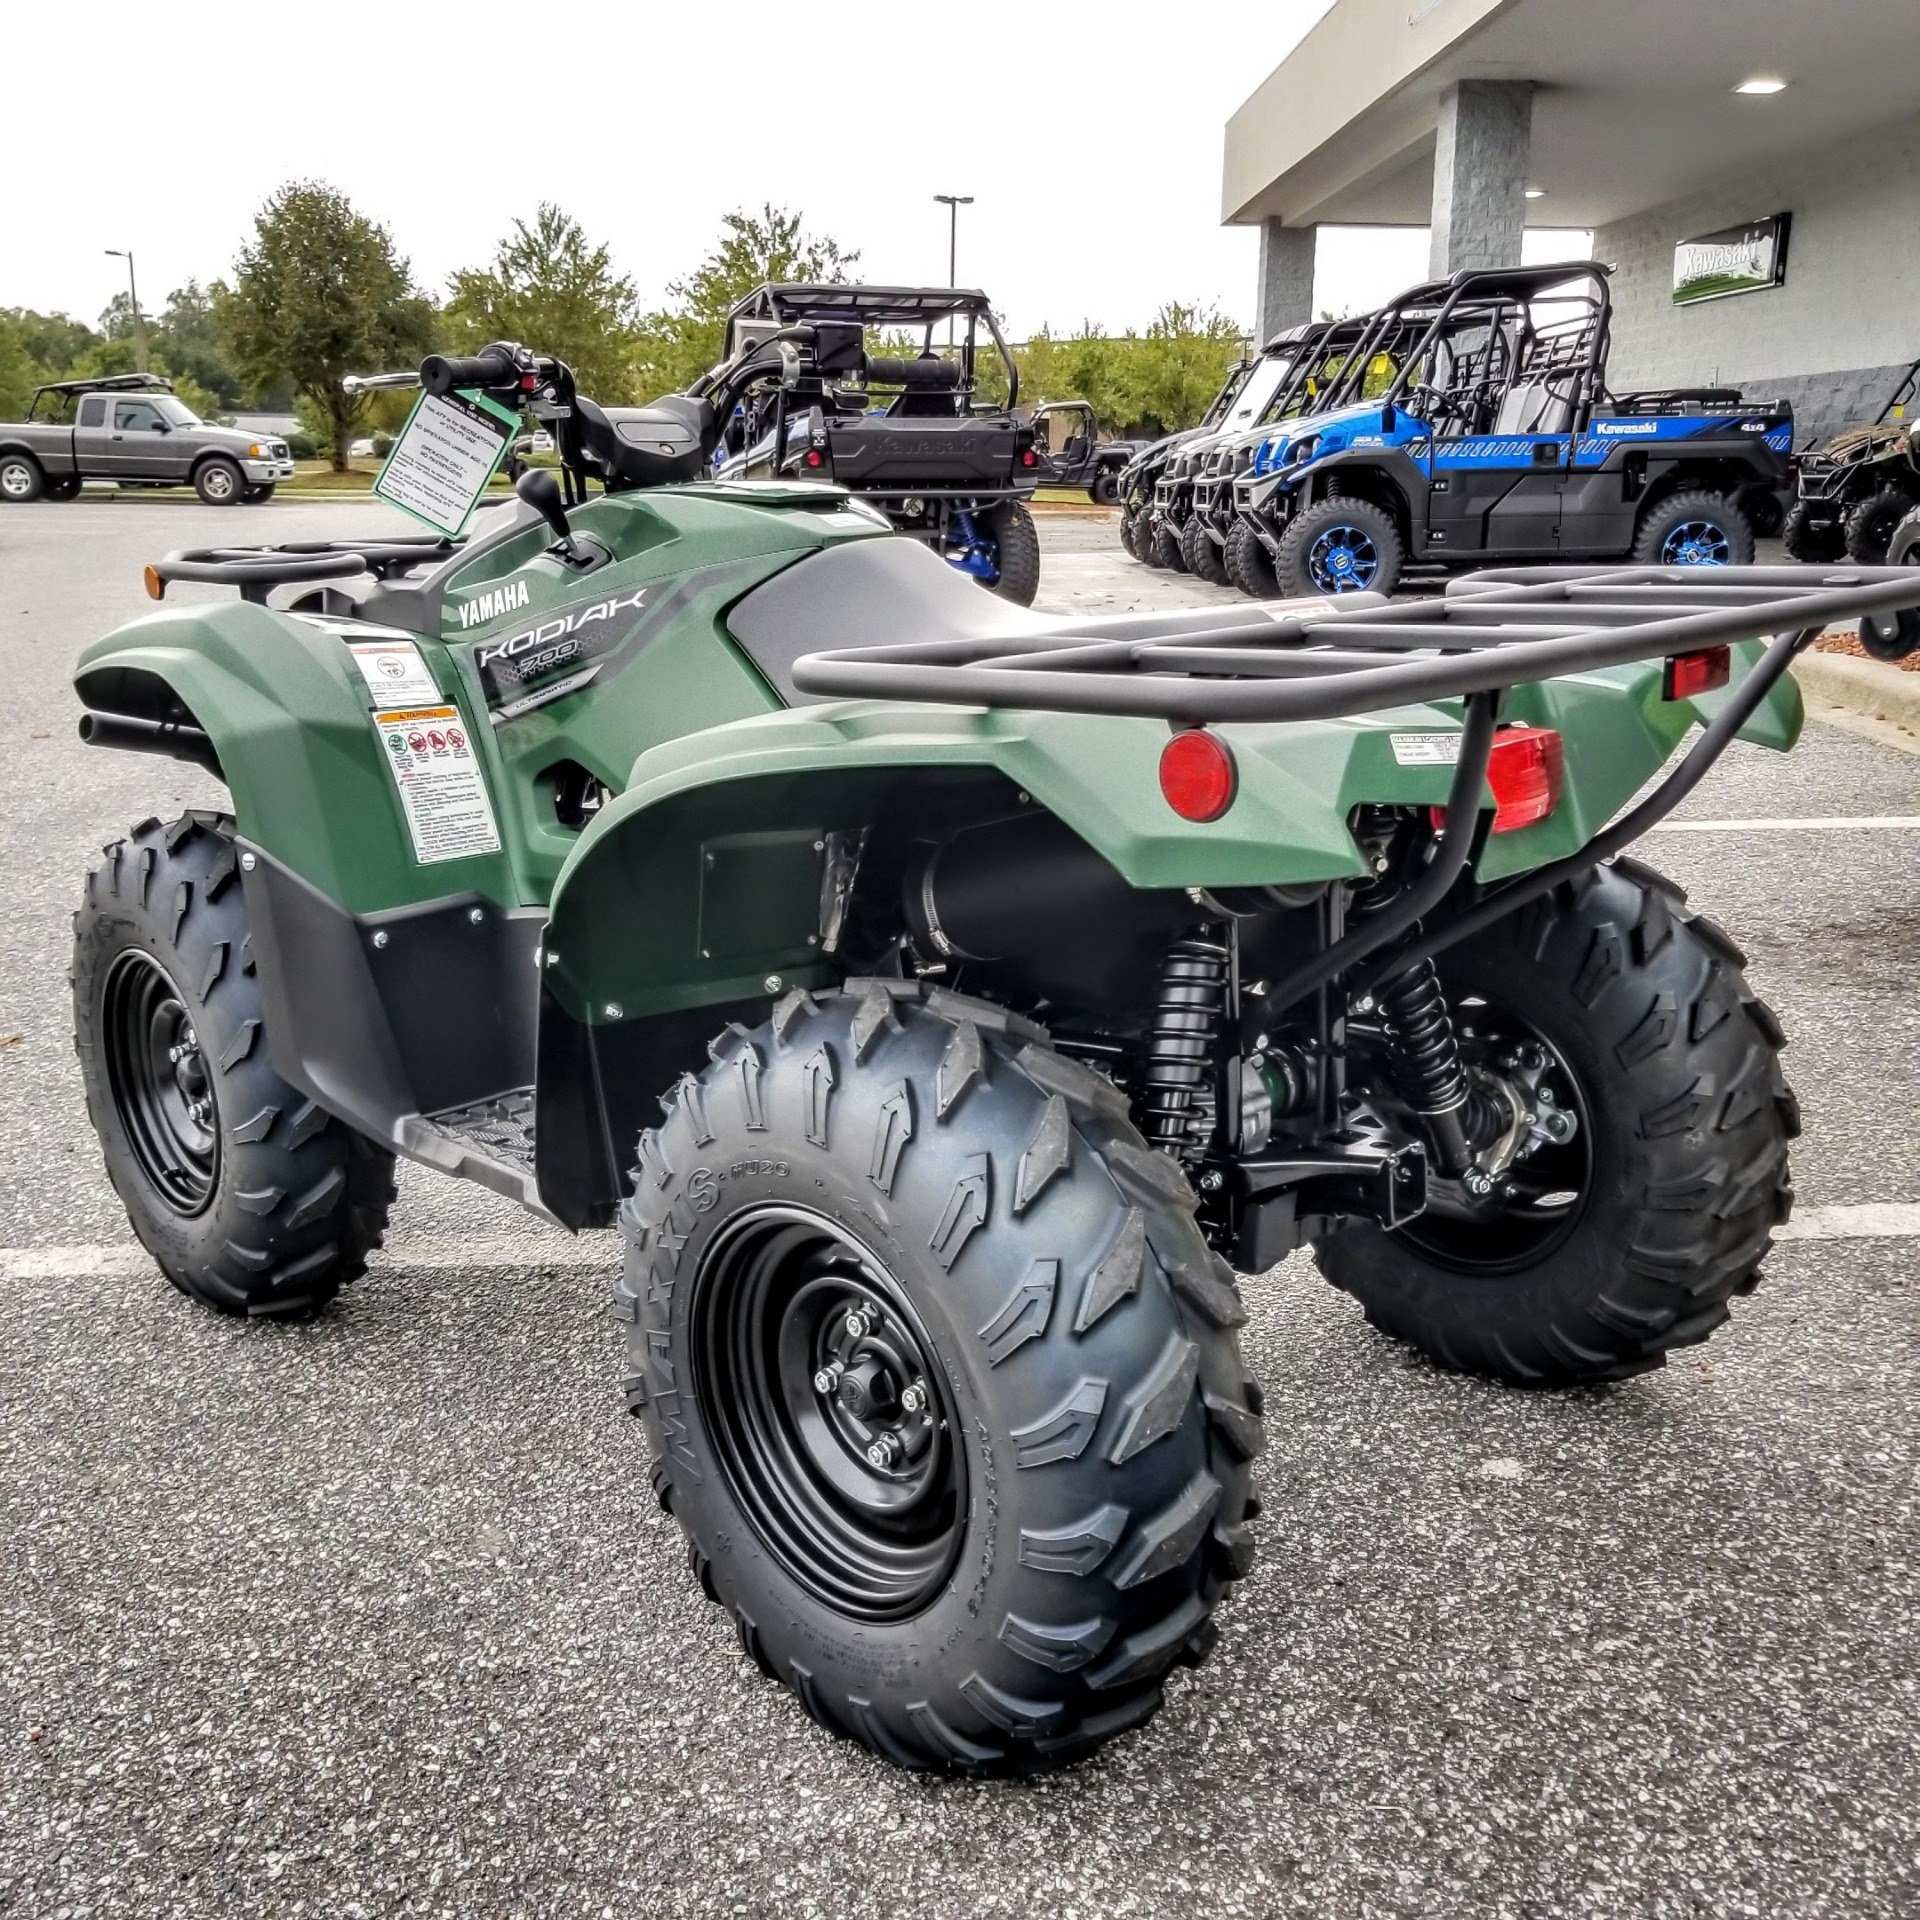 2019 Yamaha Kodiak 700 in Hickory, North Carolina - Photo 7